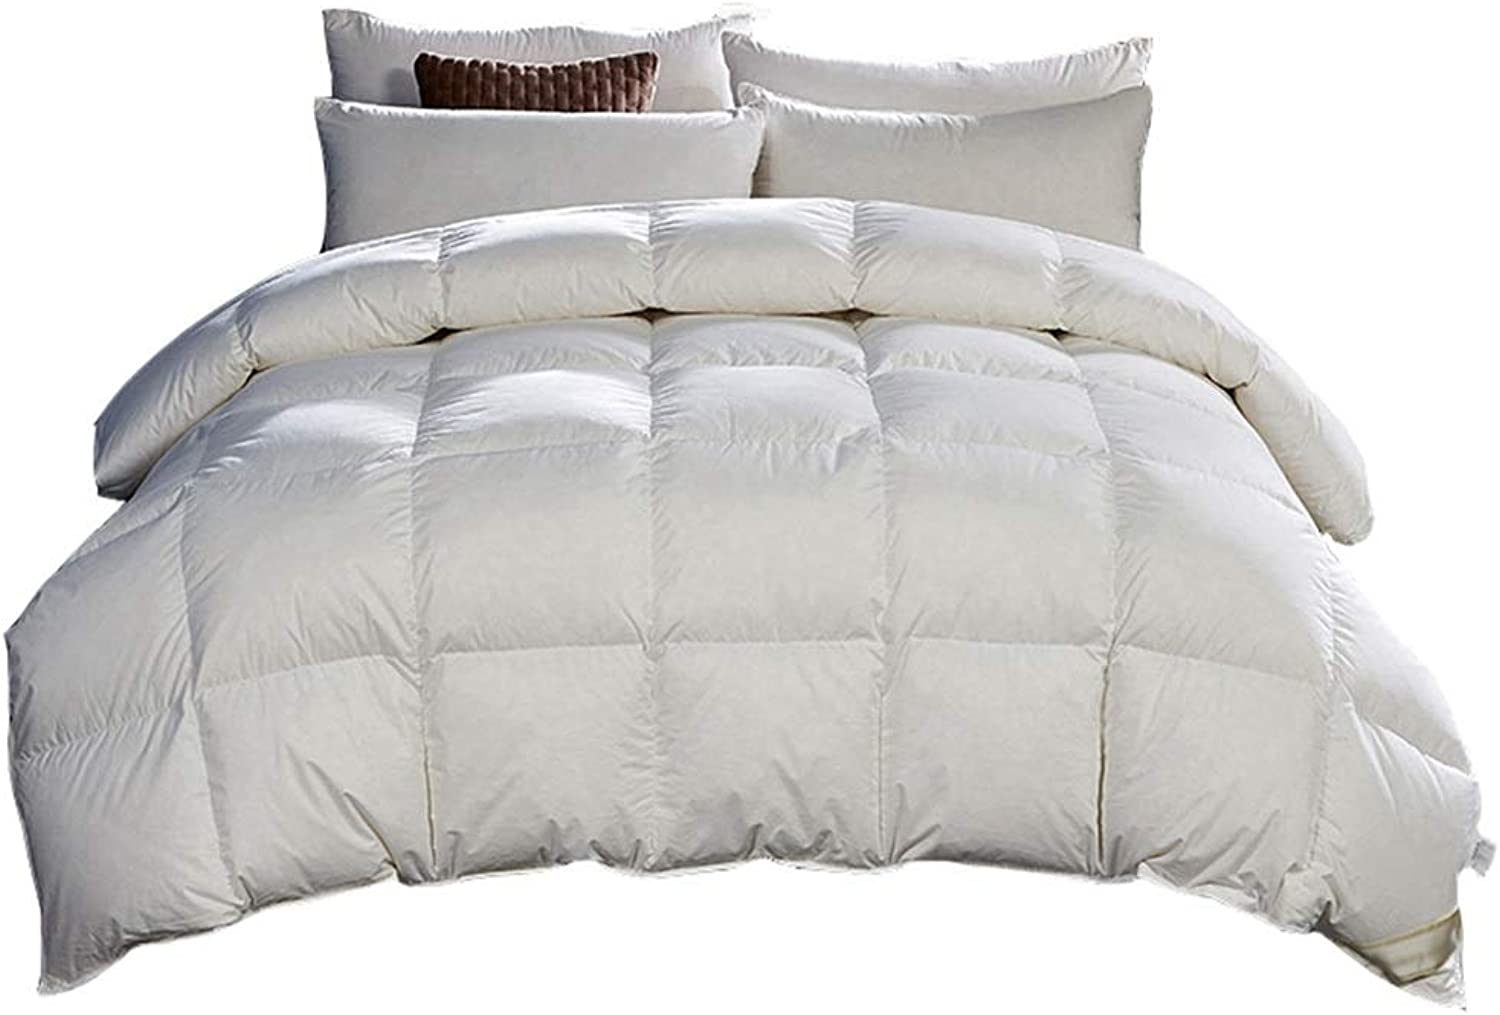 Warm Quilt Quilted Duvet Winter Thicked Warm Single Double Bed White Bedding - Family Student Dormitory Comforter - Pure Cotton Fabric Fashion Fluffy Quilt Antiallergic Quilt